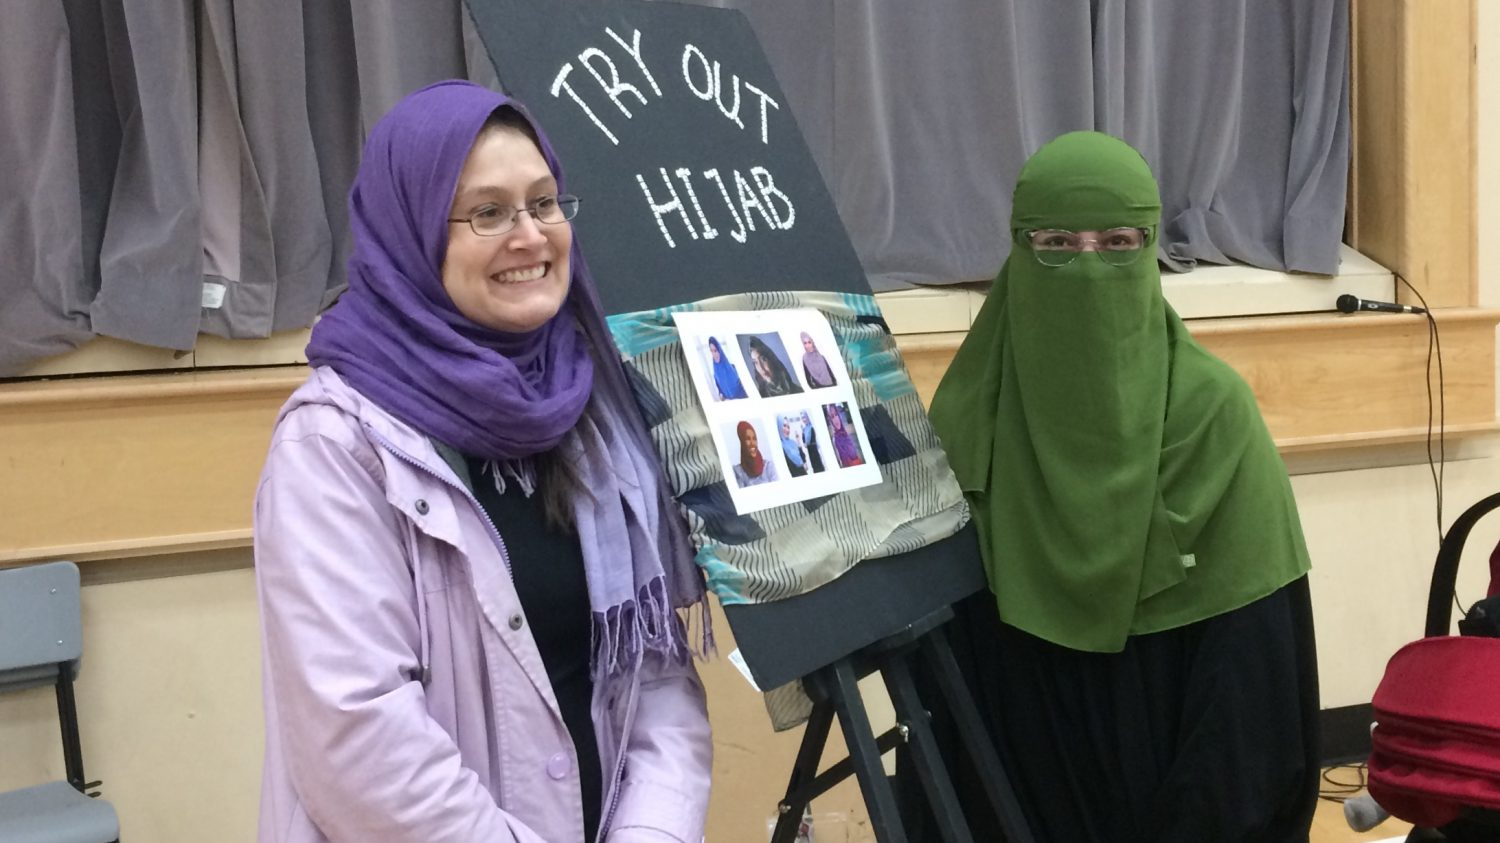 Alex Holmberg (left) tries on the hijab at Arazoo Hoseyni (right)'s table